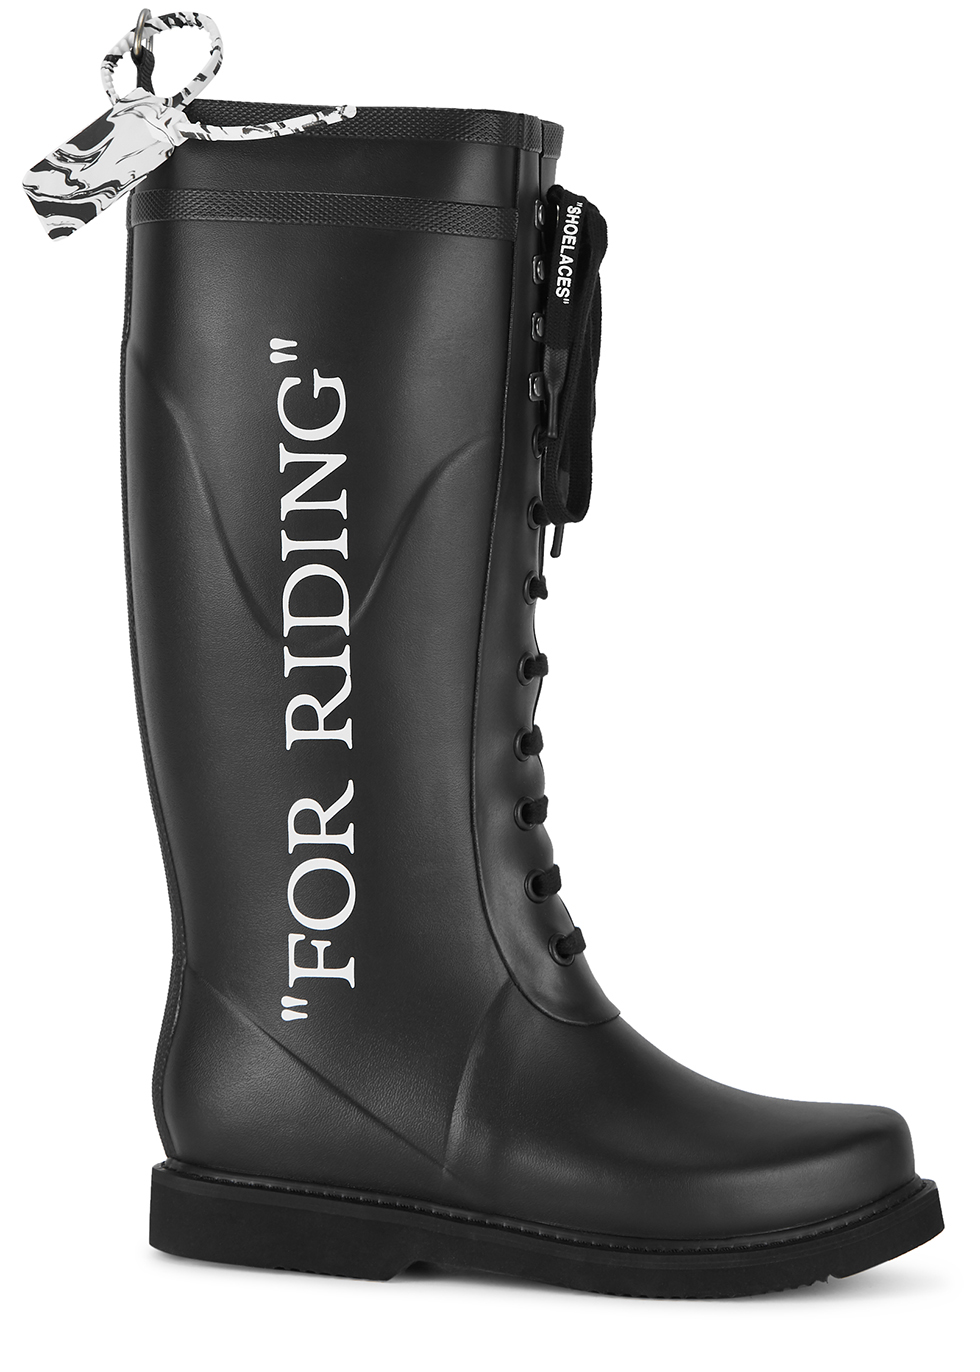 For Riding black rubber wellington boots